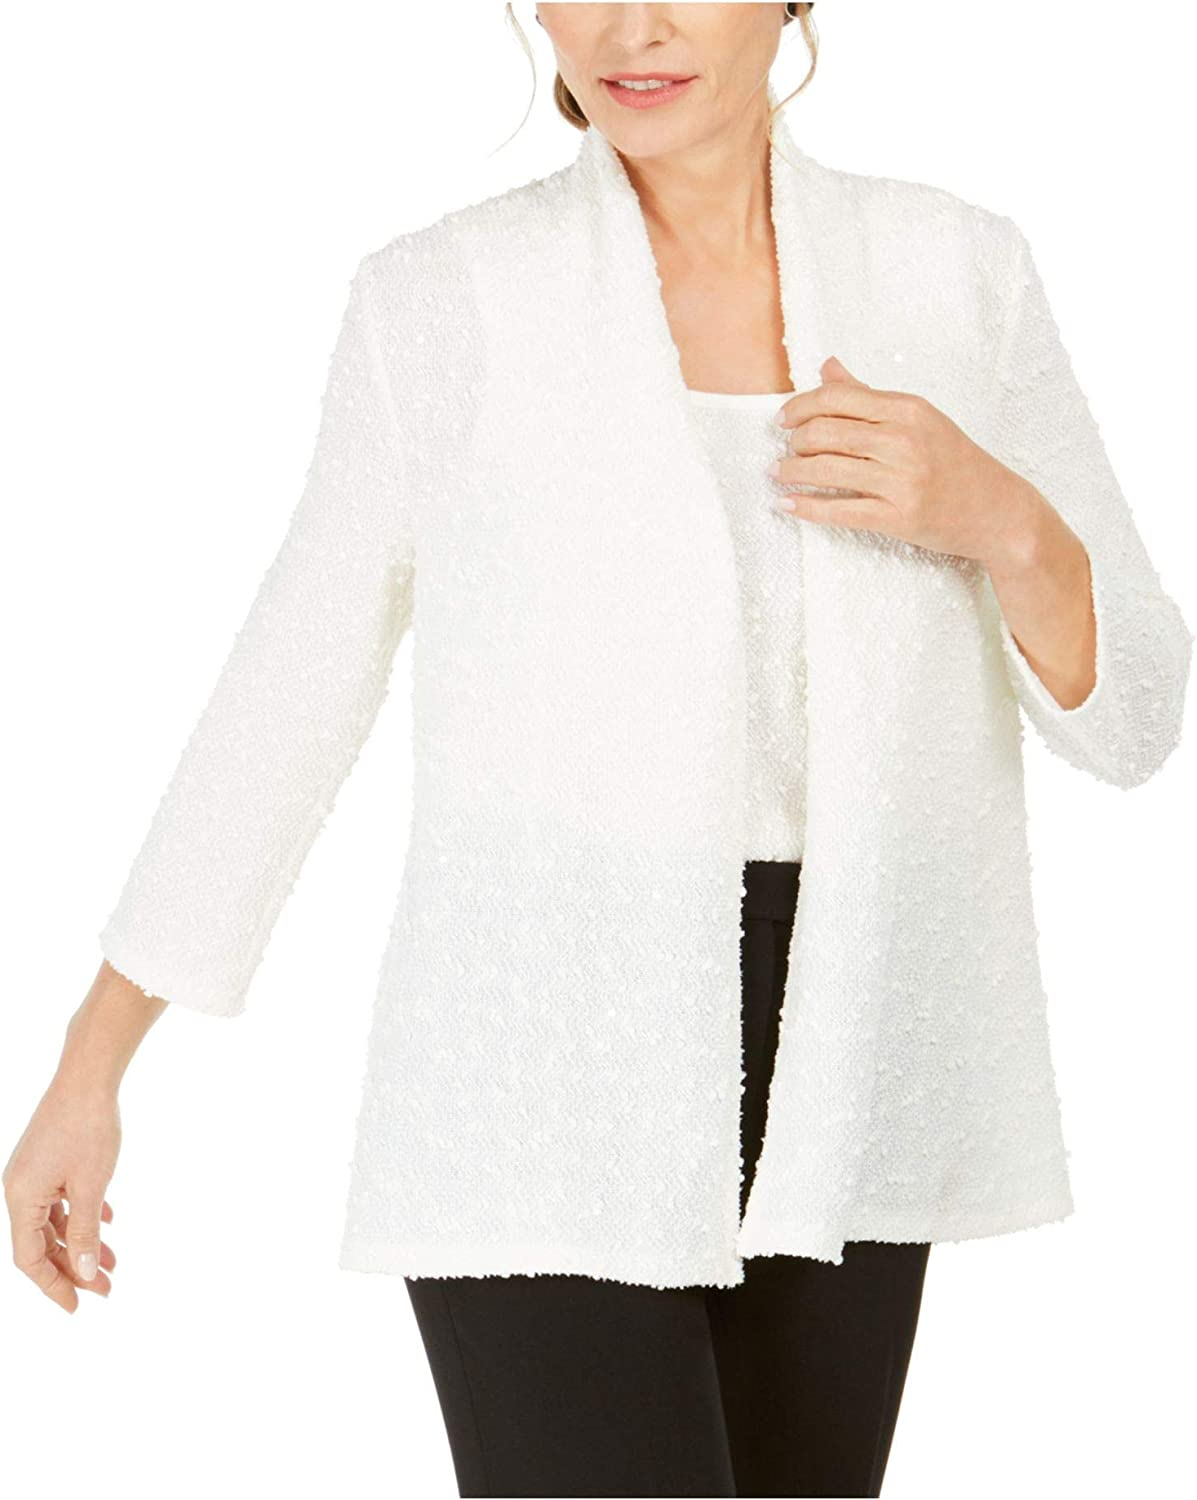 Kasper Womens White Embroidered Textured 3/4 Sleeve Open Cardigan Evening Top Size PM